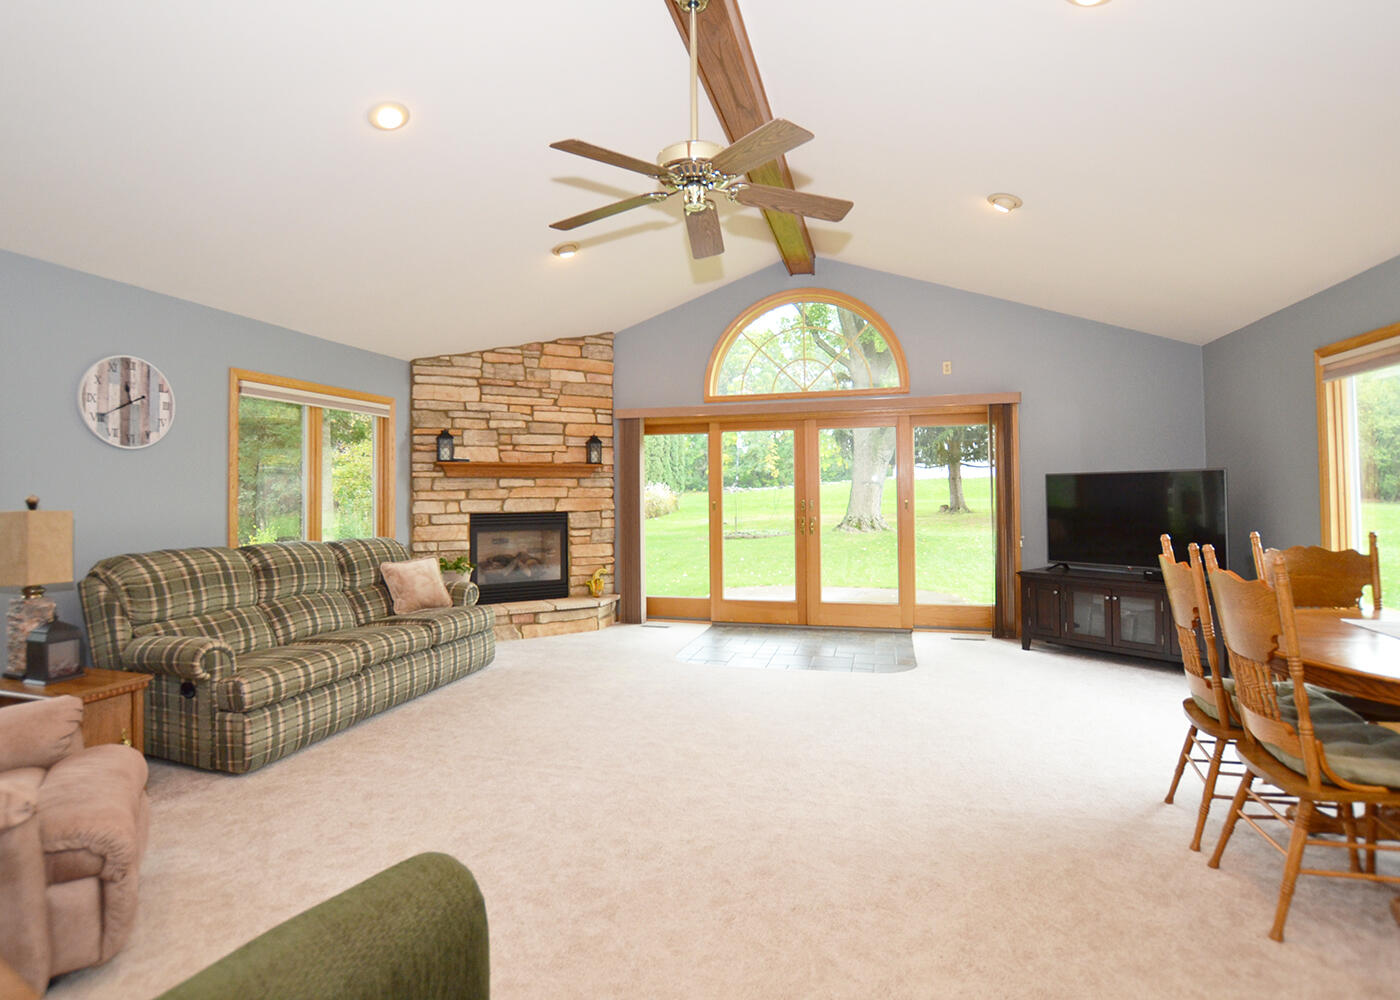 1018 Sunset Dr, Delafield, Wisconsin 53018, 3 Bedrooms Bedrooms, 7 Rooms Rooms,1 BathroomBathrooms,Single-Family,For Sale,Sunset Dr,1767654